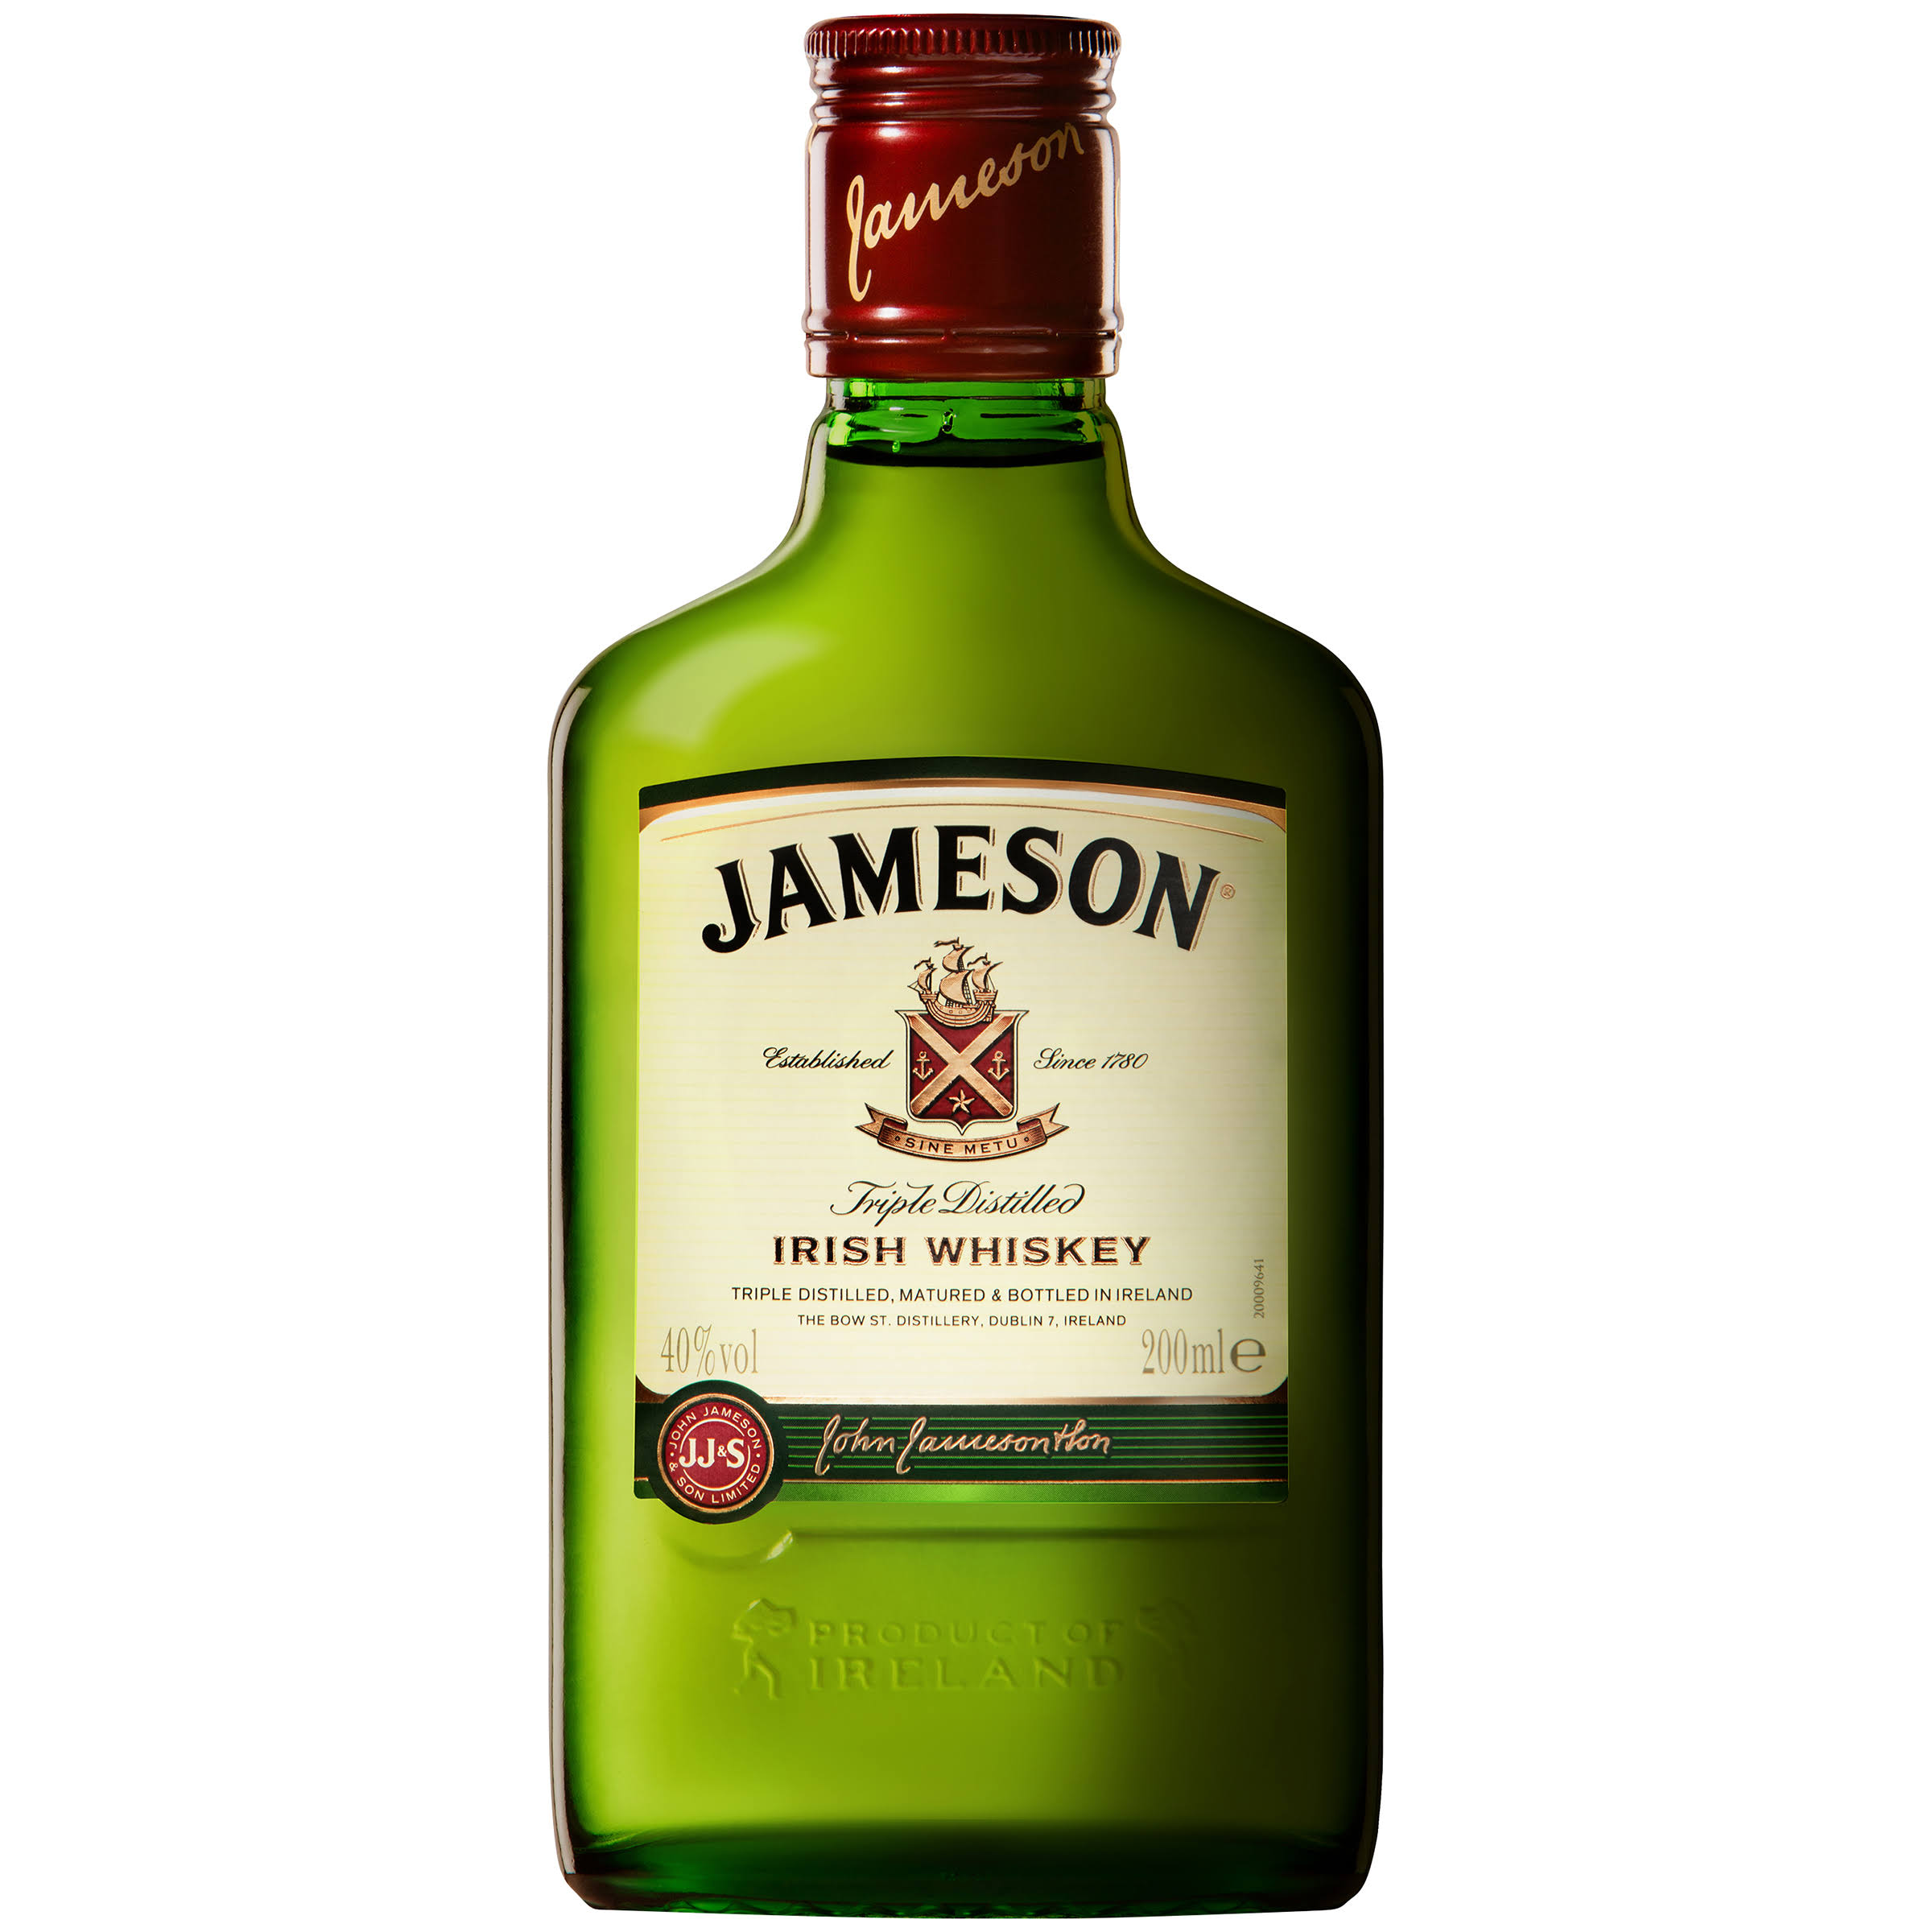 Jameson Irish Whiskey Ireland 200ml Flask Bottle